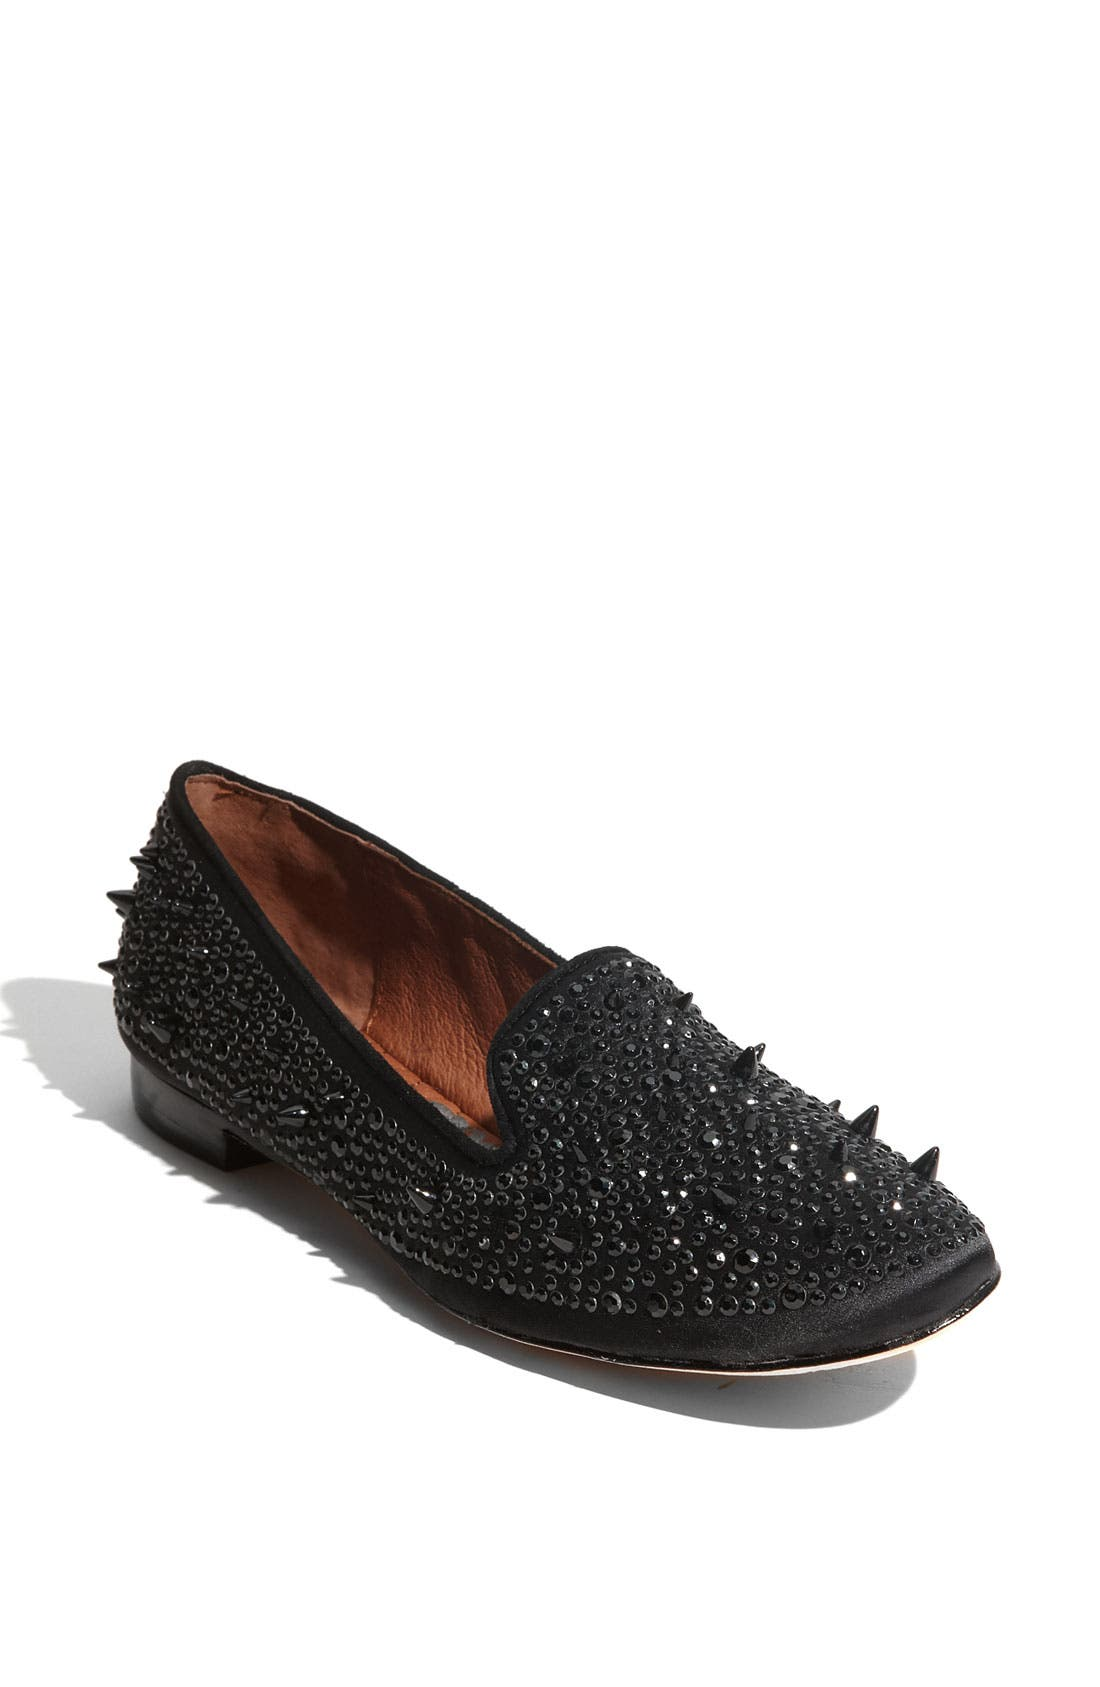 Alternate Image 1 Selected - Sam Edelman 'Adena' Flat